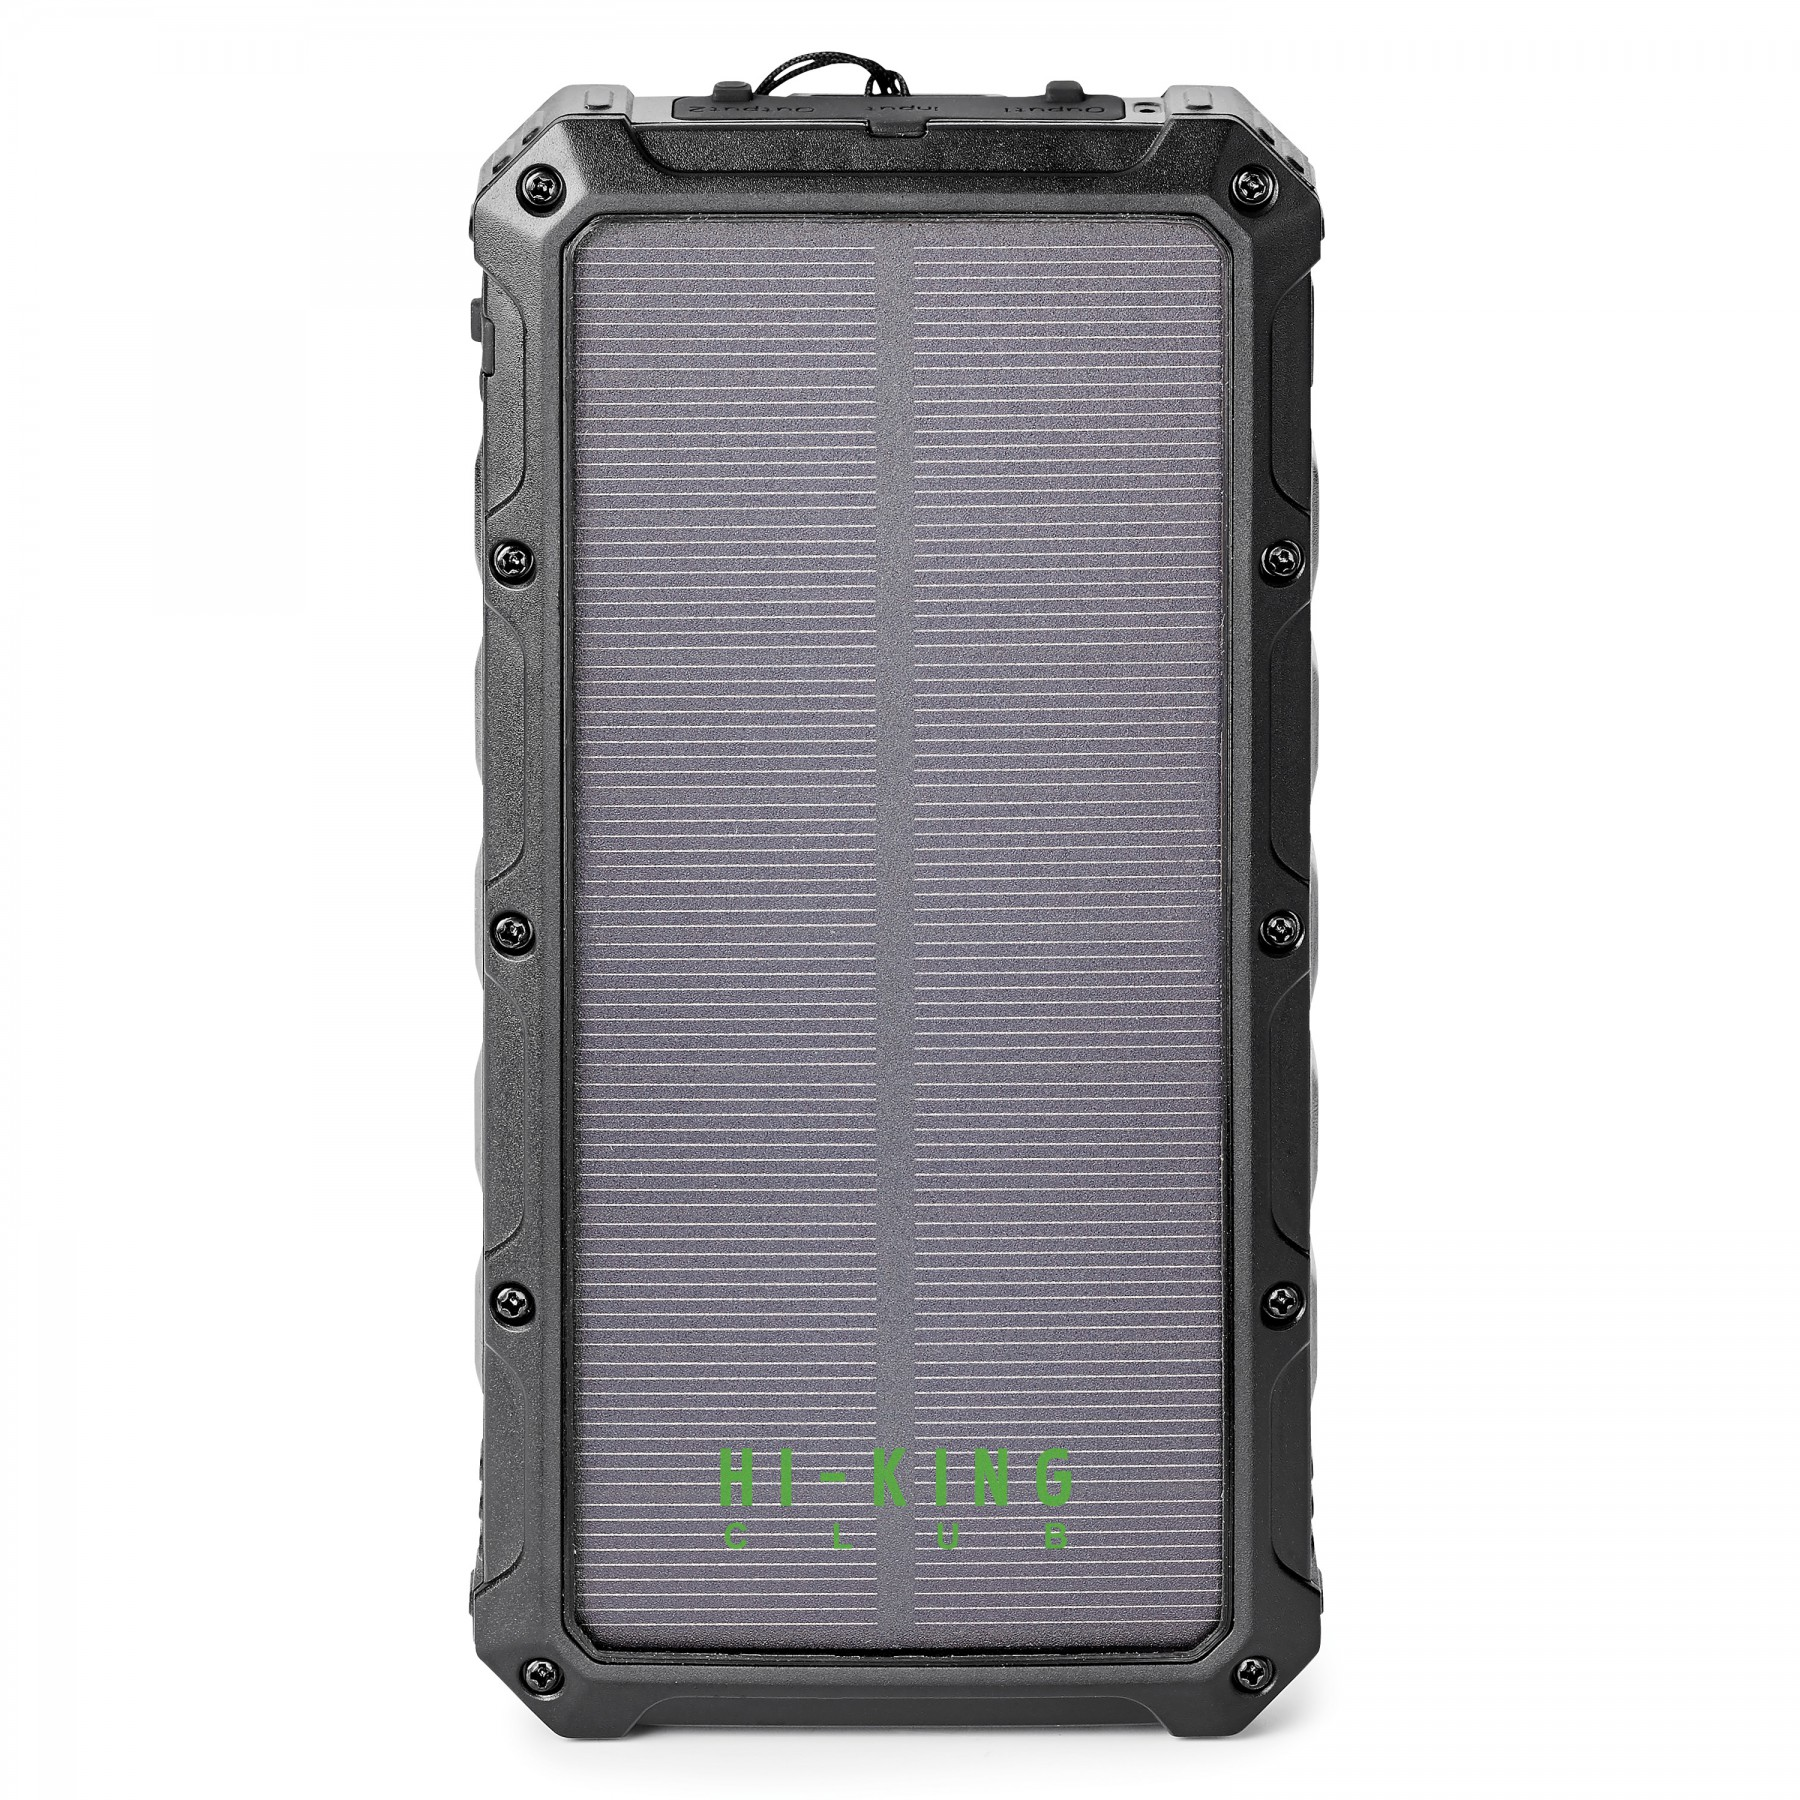 SUPER OFF-ROAD 12,000 mAh SOLAR WIRELESS POWER BANK INCLUDES UL CERTIFIED BATTERY, T1037, One Colour Imprint